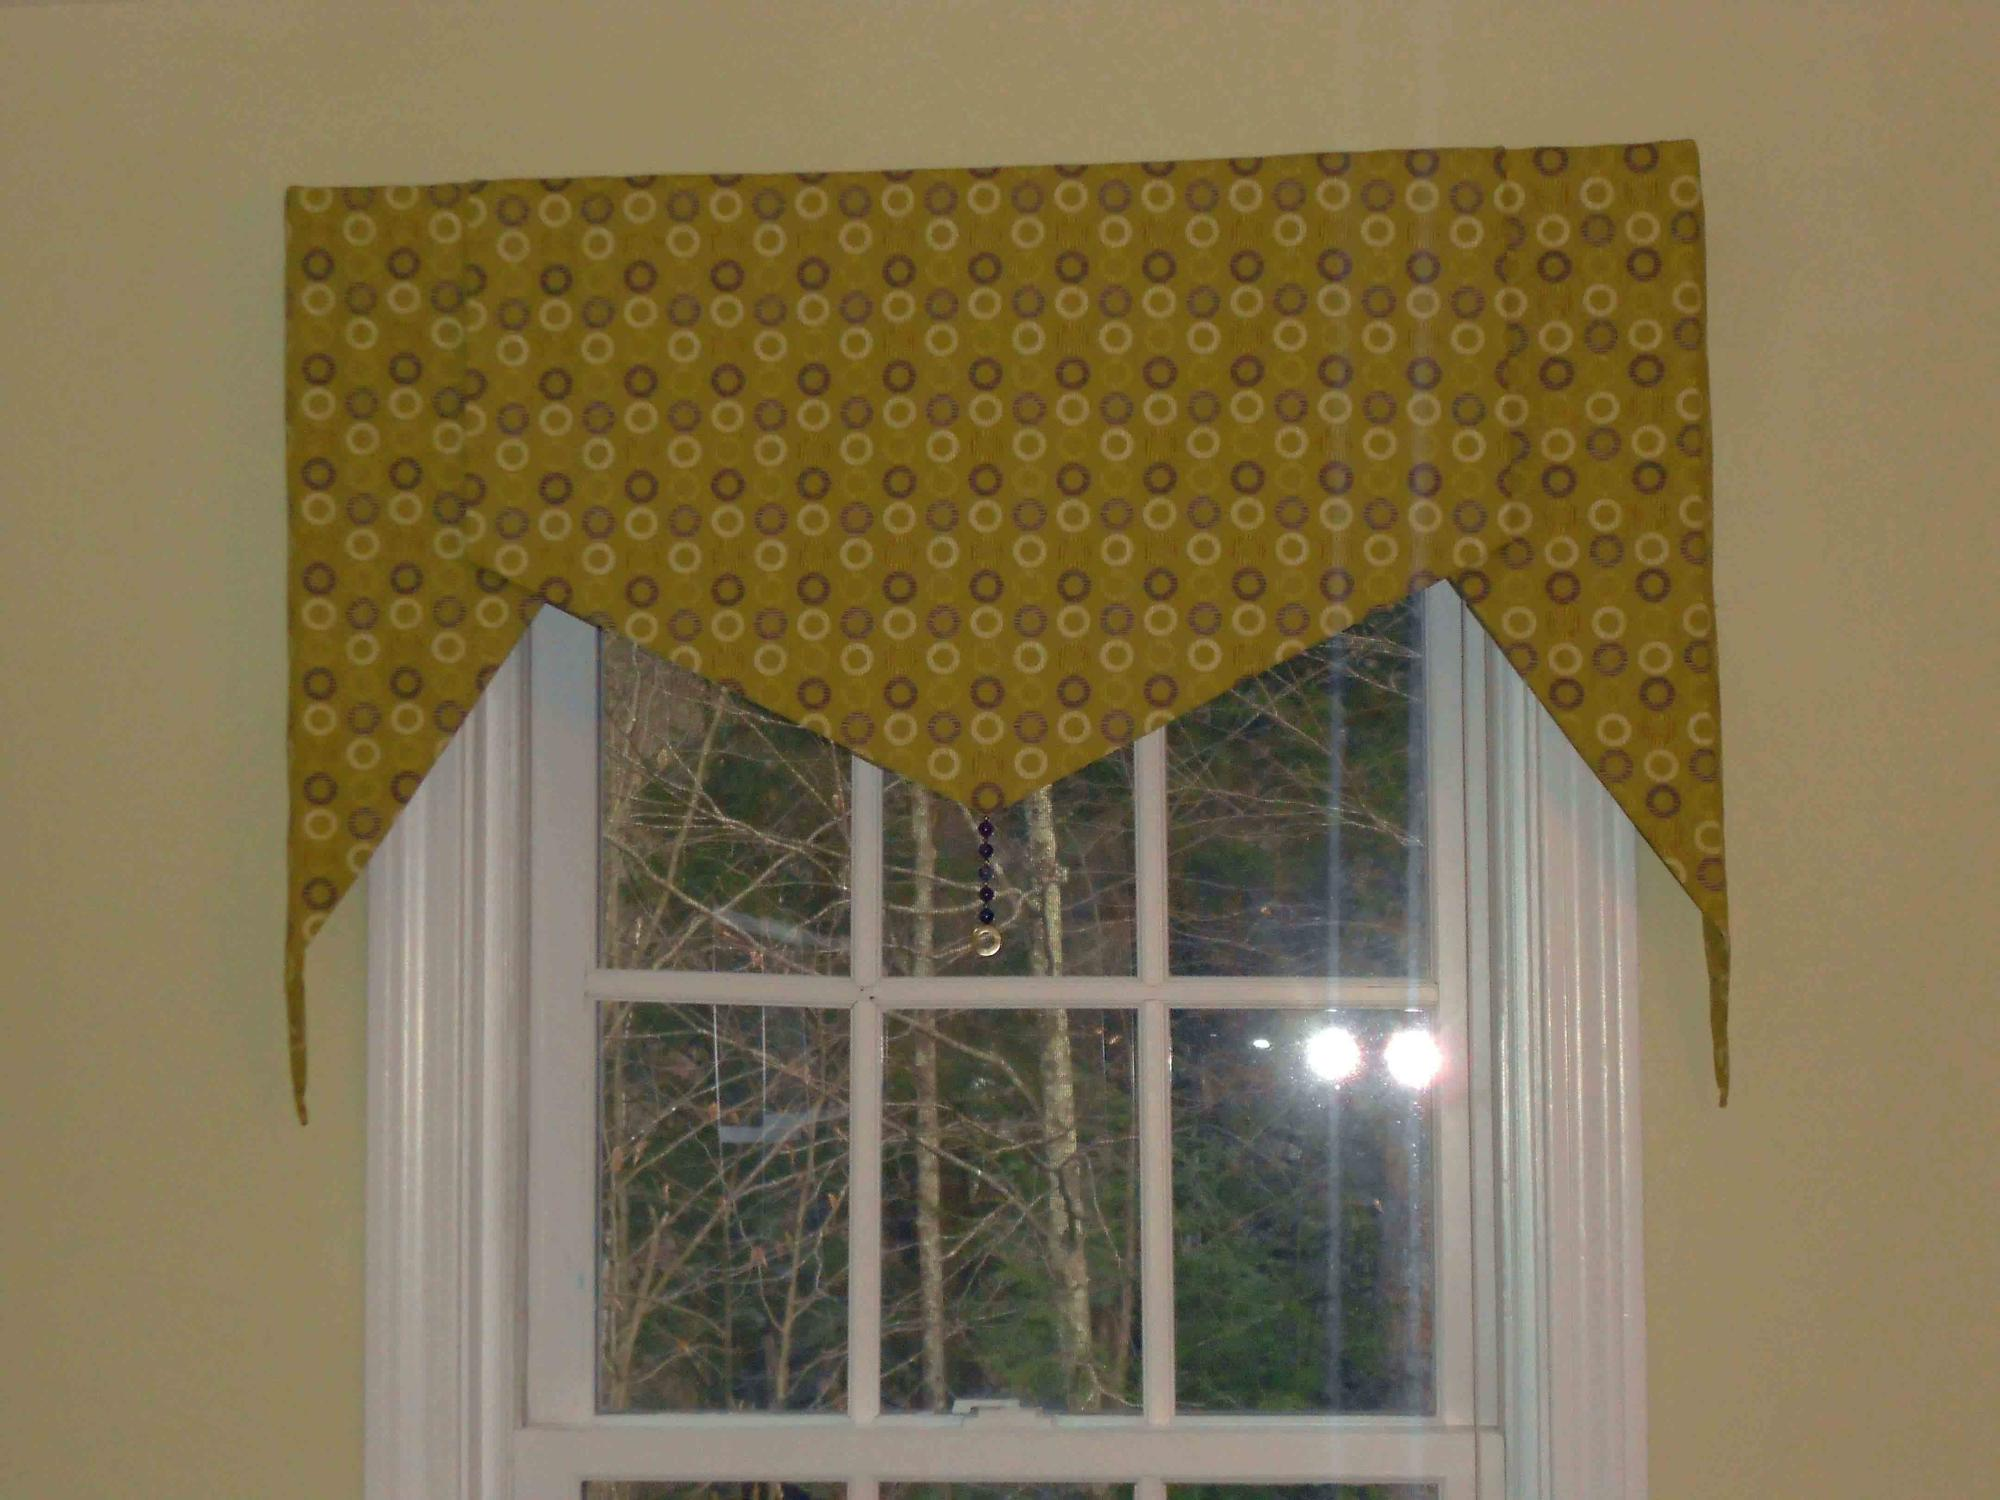 Shaped Valance with decorative beads on the points